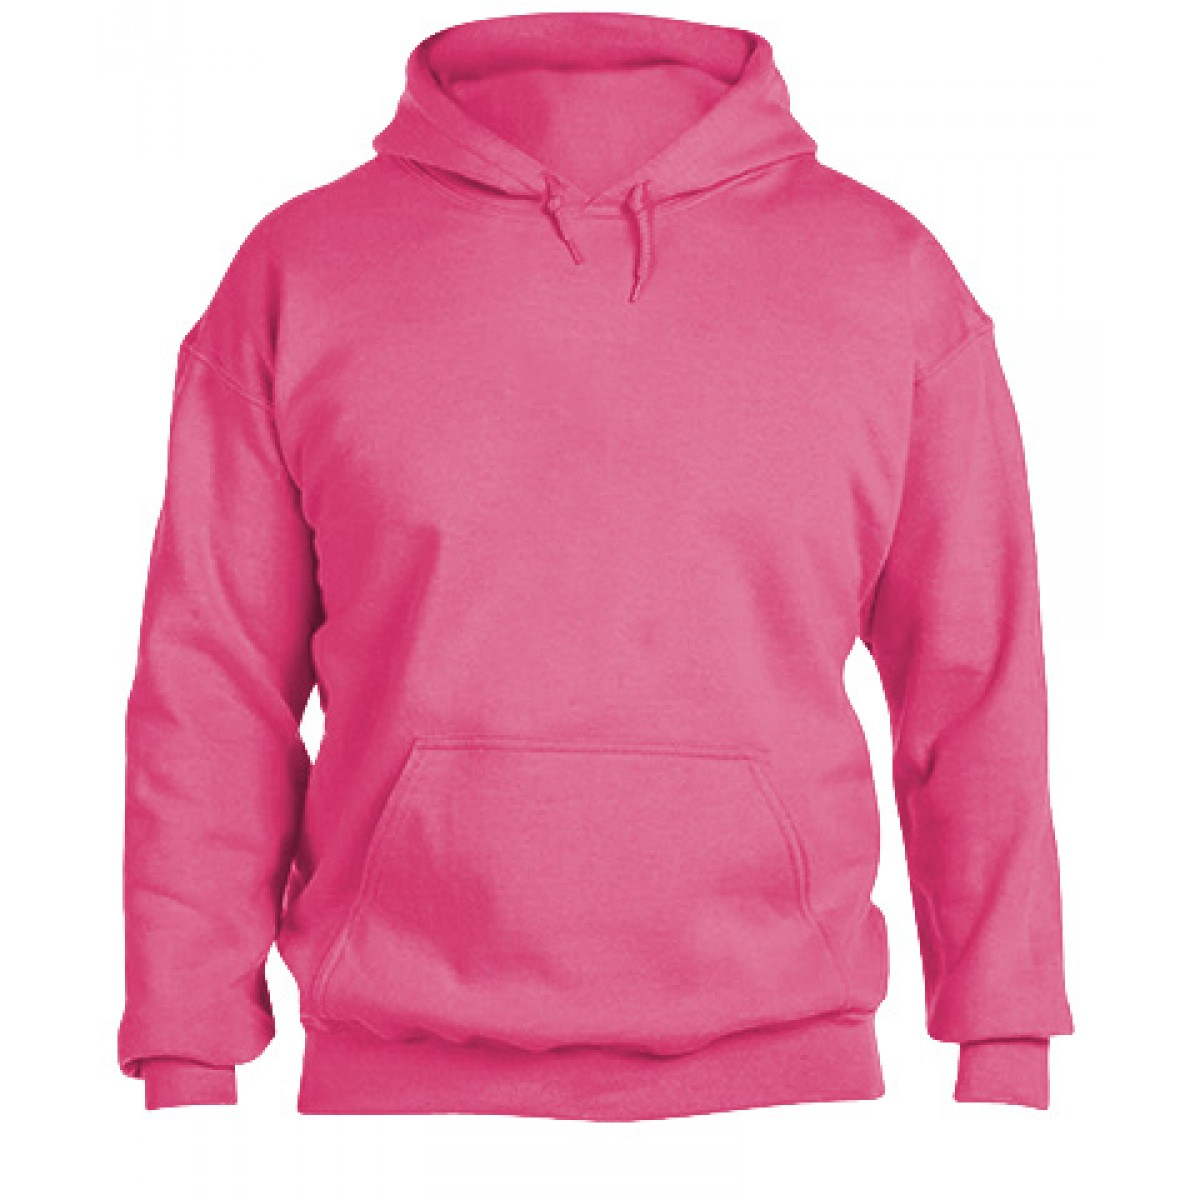 Hooded Sweatshirt 50/50 Heavy Safety Pink-Safety Pink-L